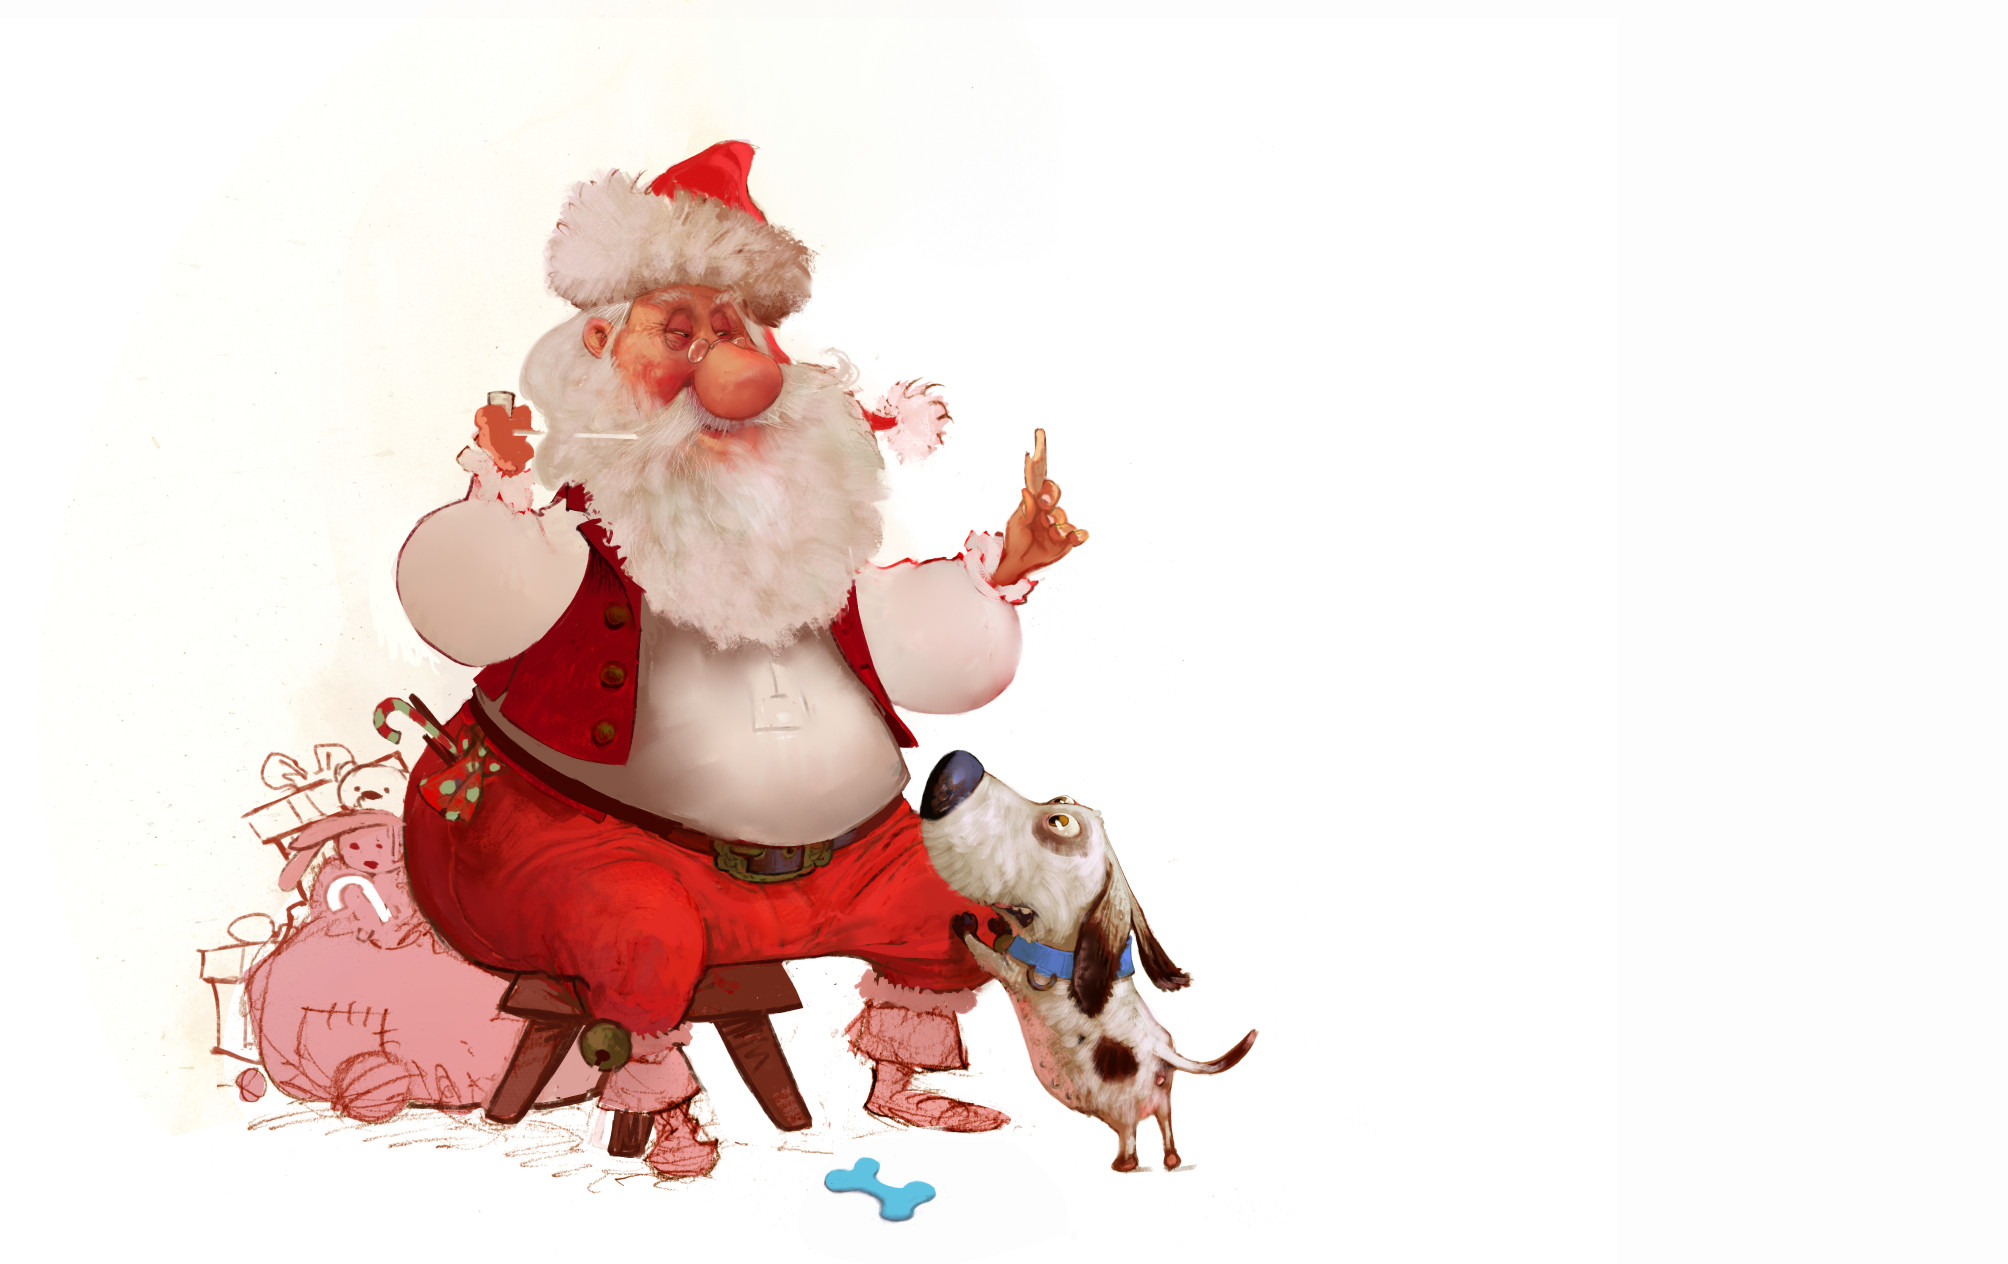 I replaced the elf by a dog!